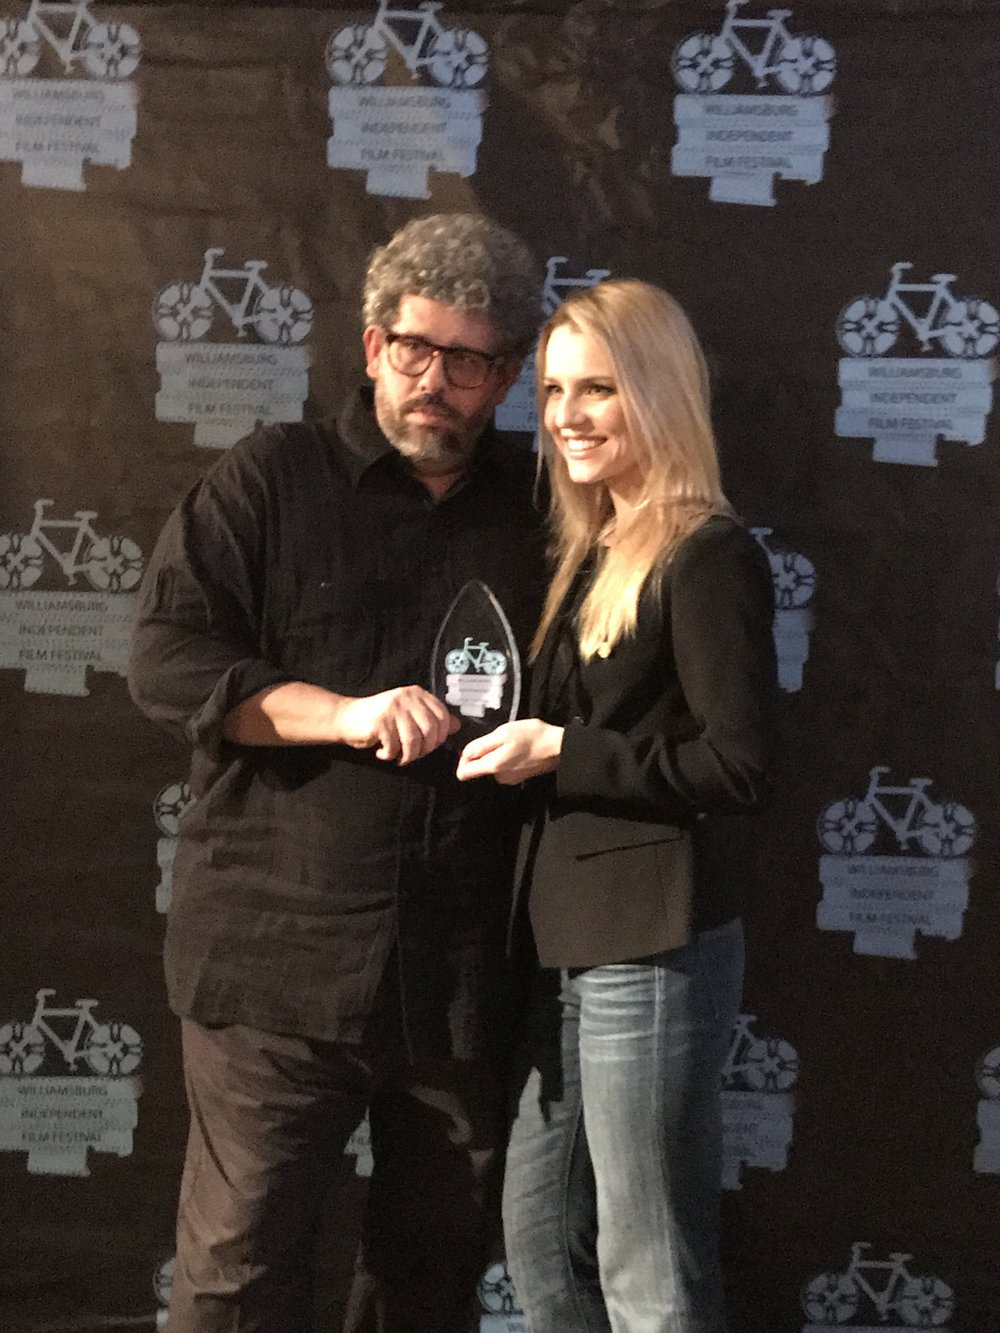 Neil LaBute and Gia Crovatin both won awards for their short film, Good Luck (in Farsi)